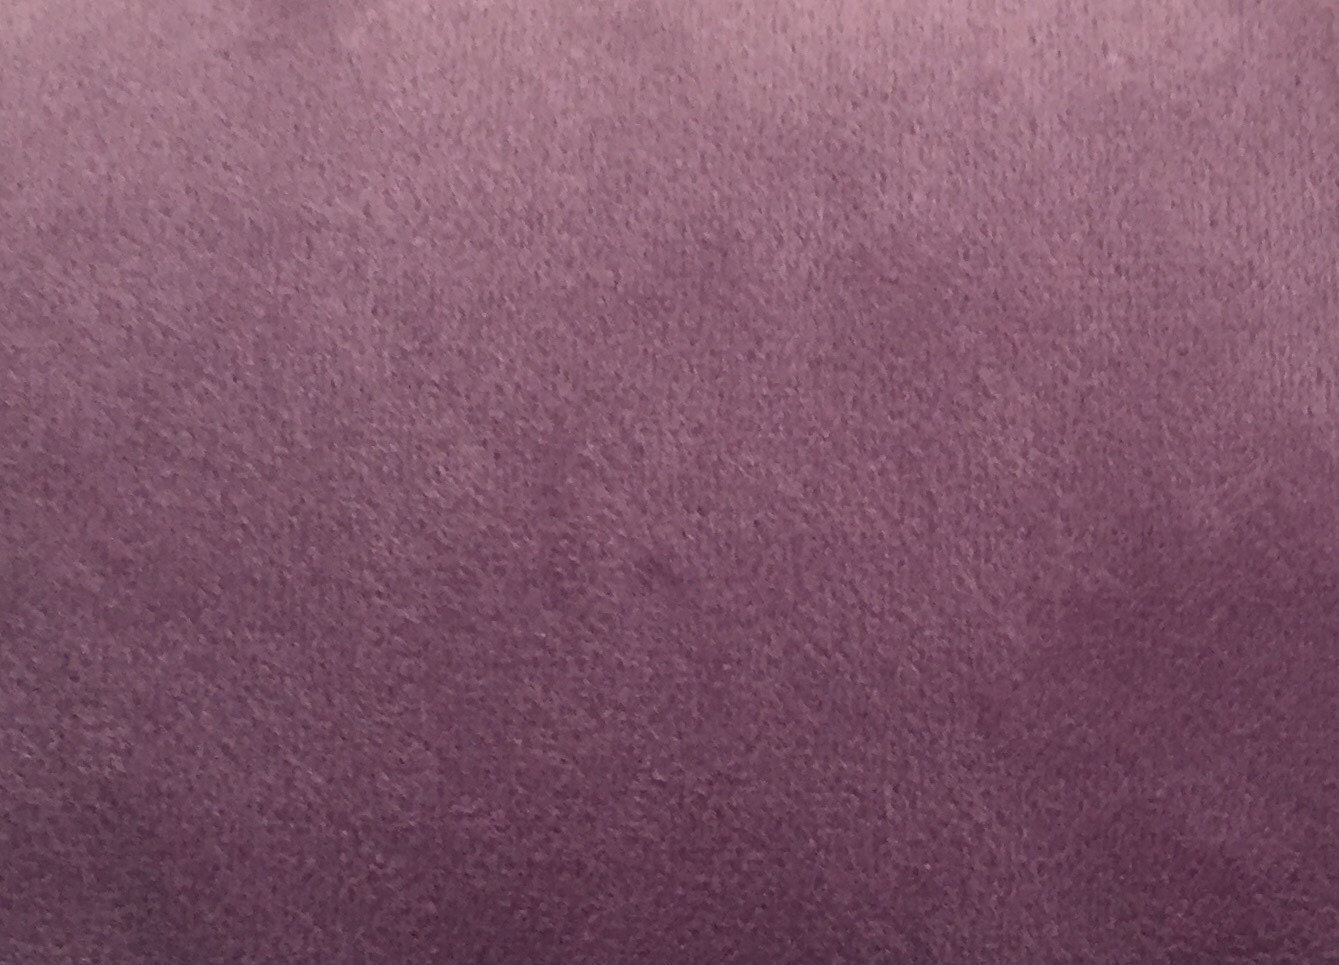 Light Lavender Velvety Feel Upholstery Fabric By Yard Etsy